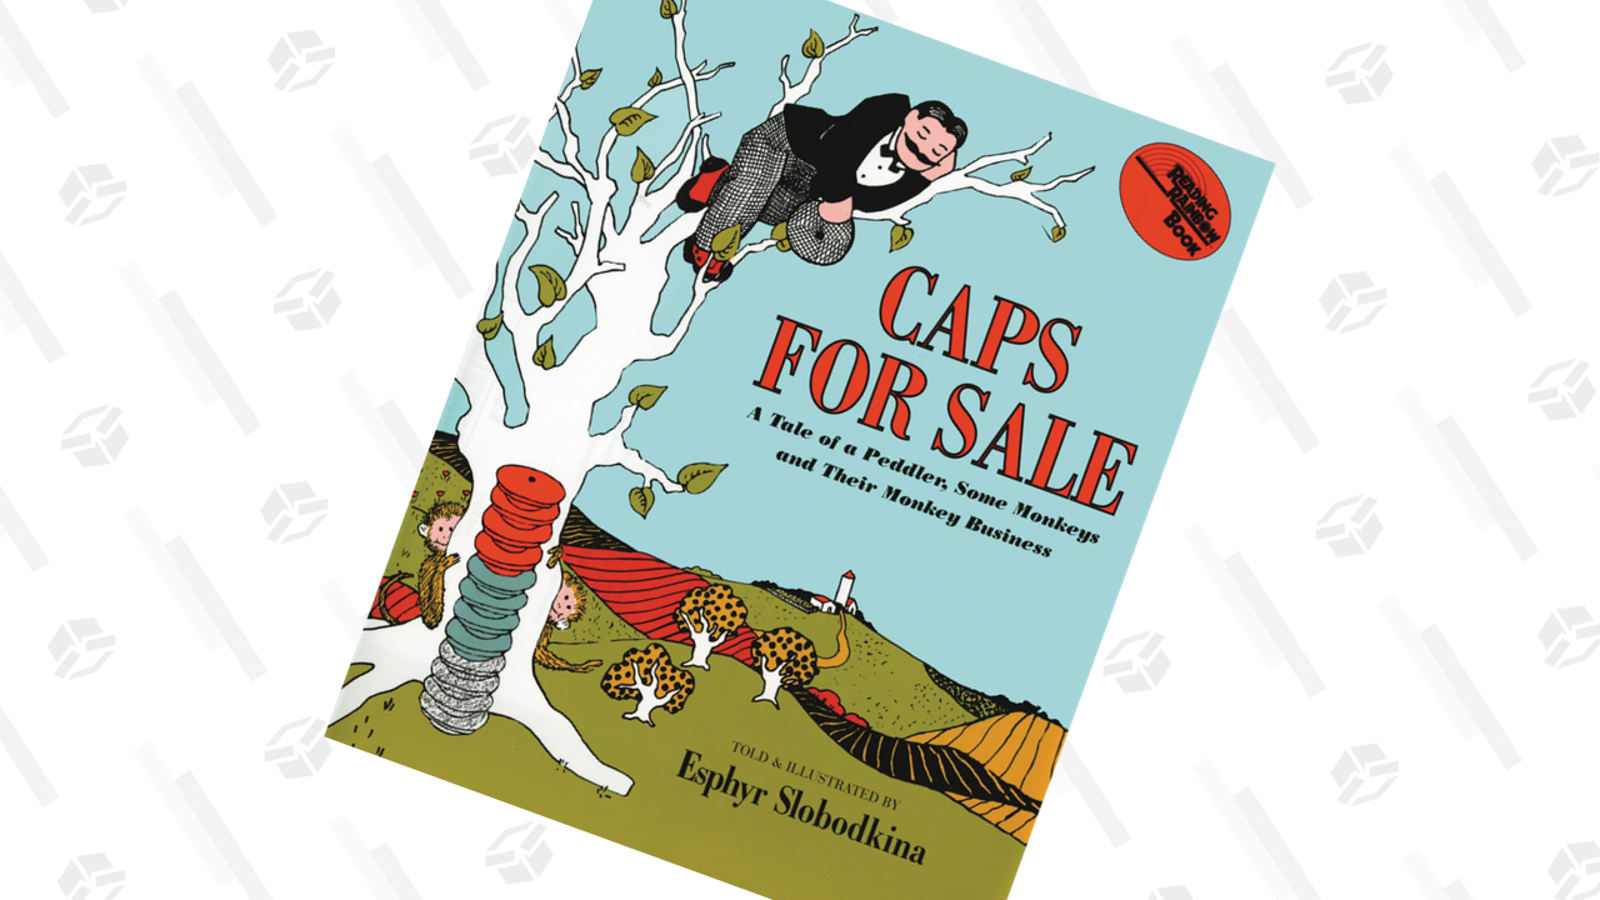 """Caps For Sale by Esphyr Slobodkina This was my favorite book as a kid and I was delighted to find that it's still a hit today and holds up well (no weirdly sad or menacing elements). It's fun to have babies and toddlers act out the physical elements (stamping feet, shaking fists…) and yelling """"You monkeys you, you give me back my caps"""" at the top of your lungs."""